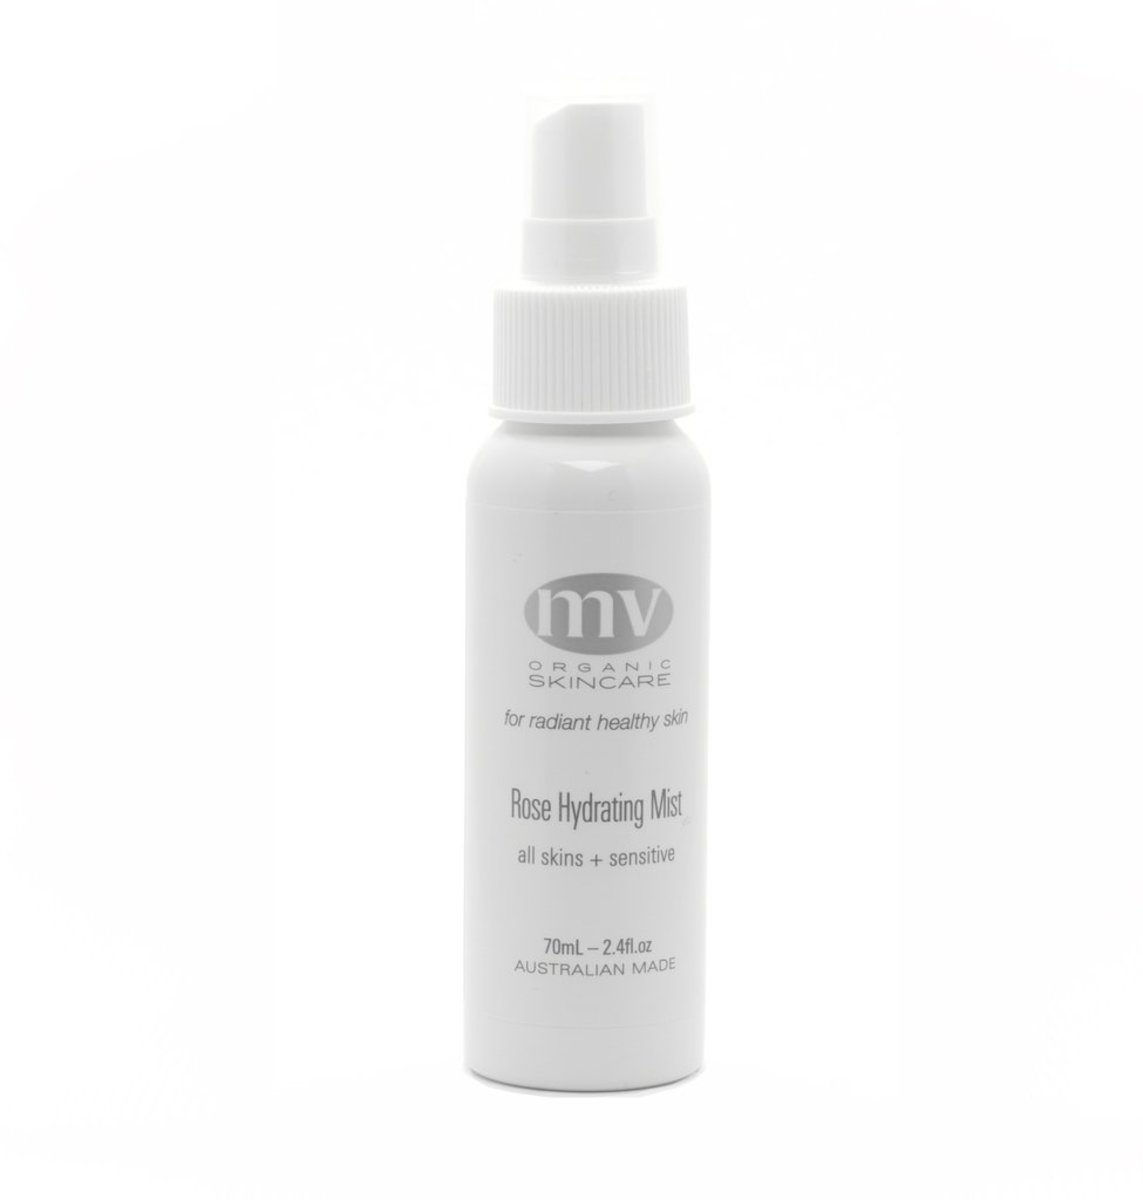 MV Skincare Gentle Rose Hydrating Mist